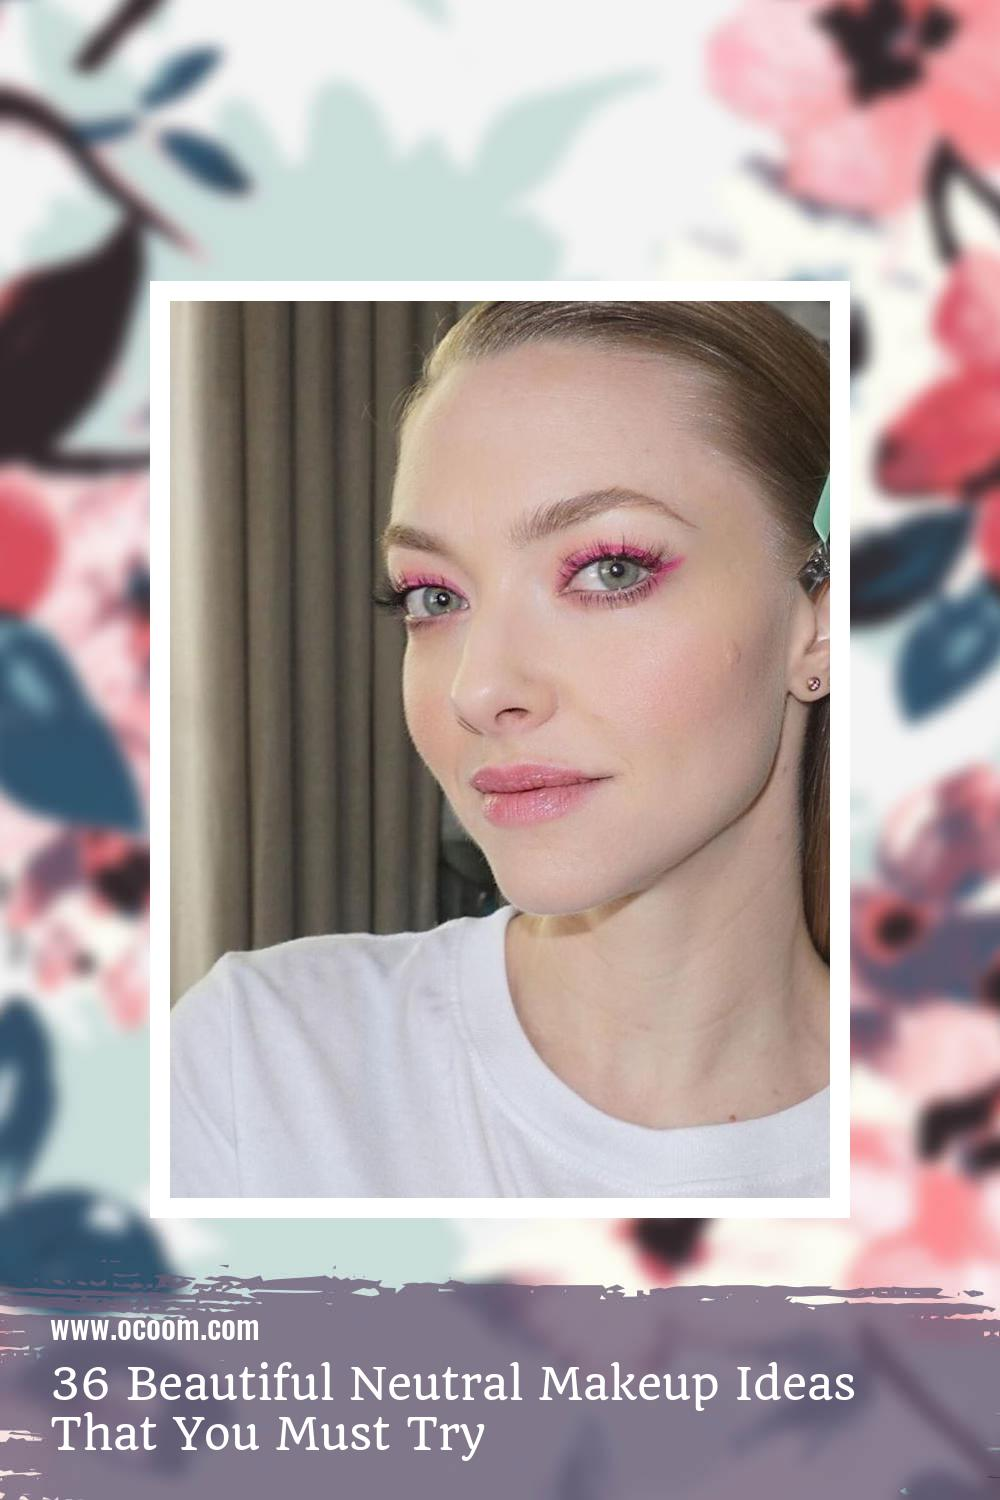 36 Beautiful Neutral Makeup Ideas That You Must Try 2